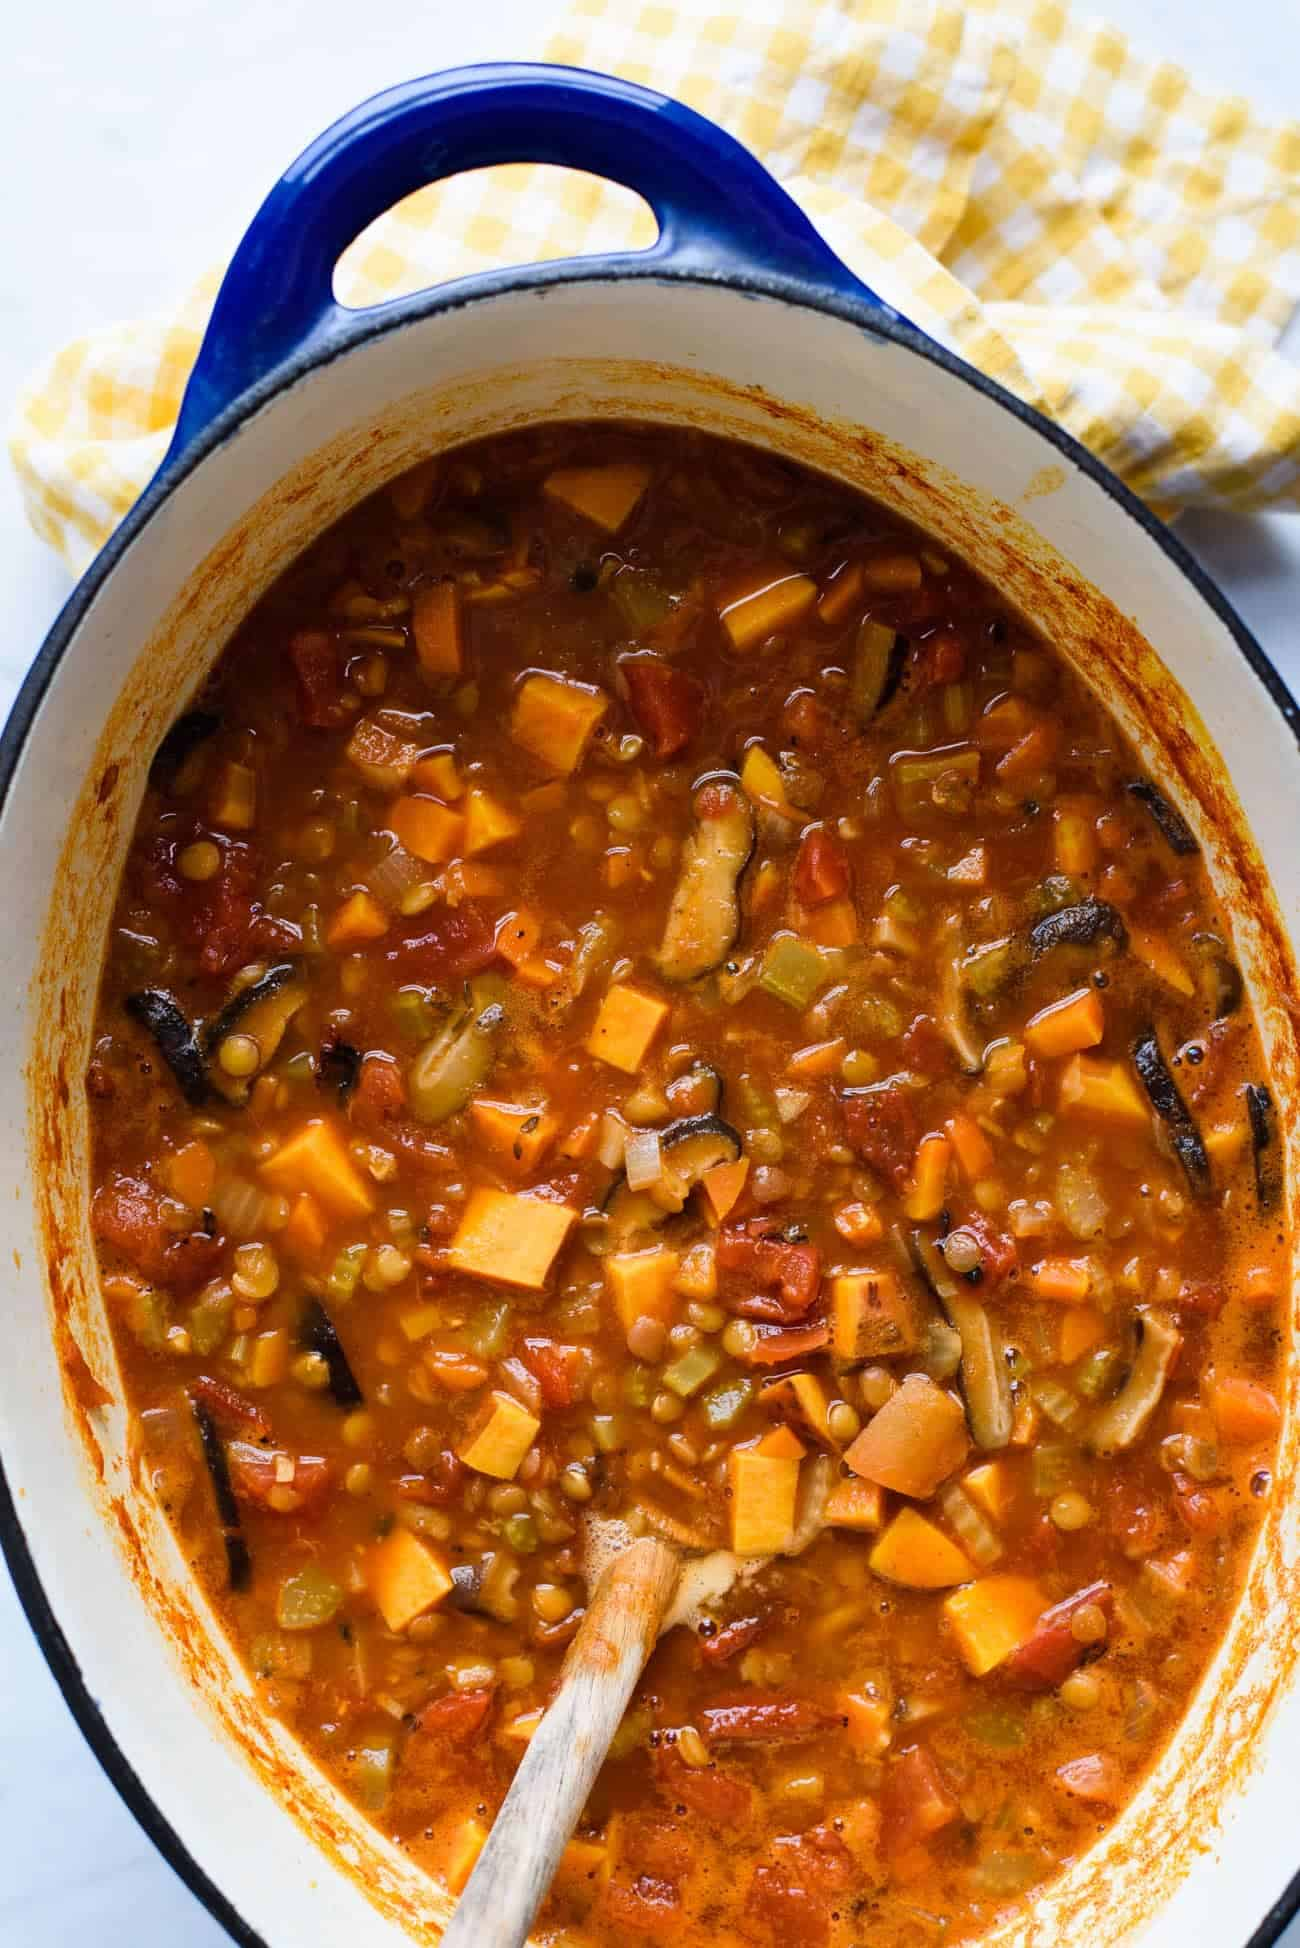 Easy lentil soup | Tomato lentil soup with sweet potatoes and shiitakes in a blue Dutch oven